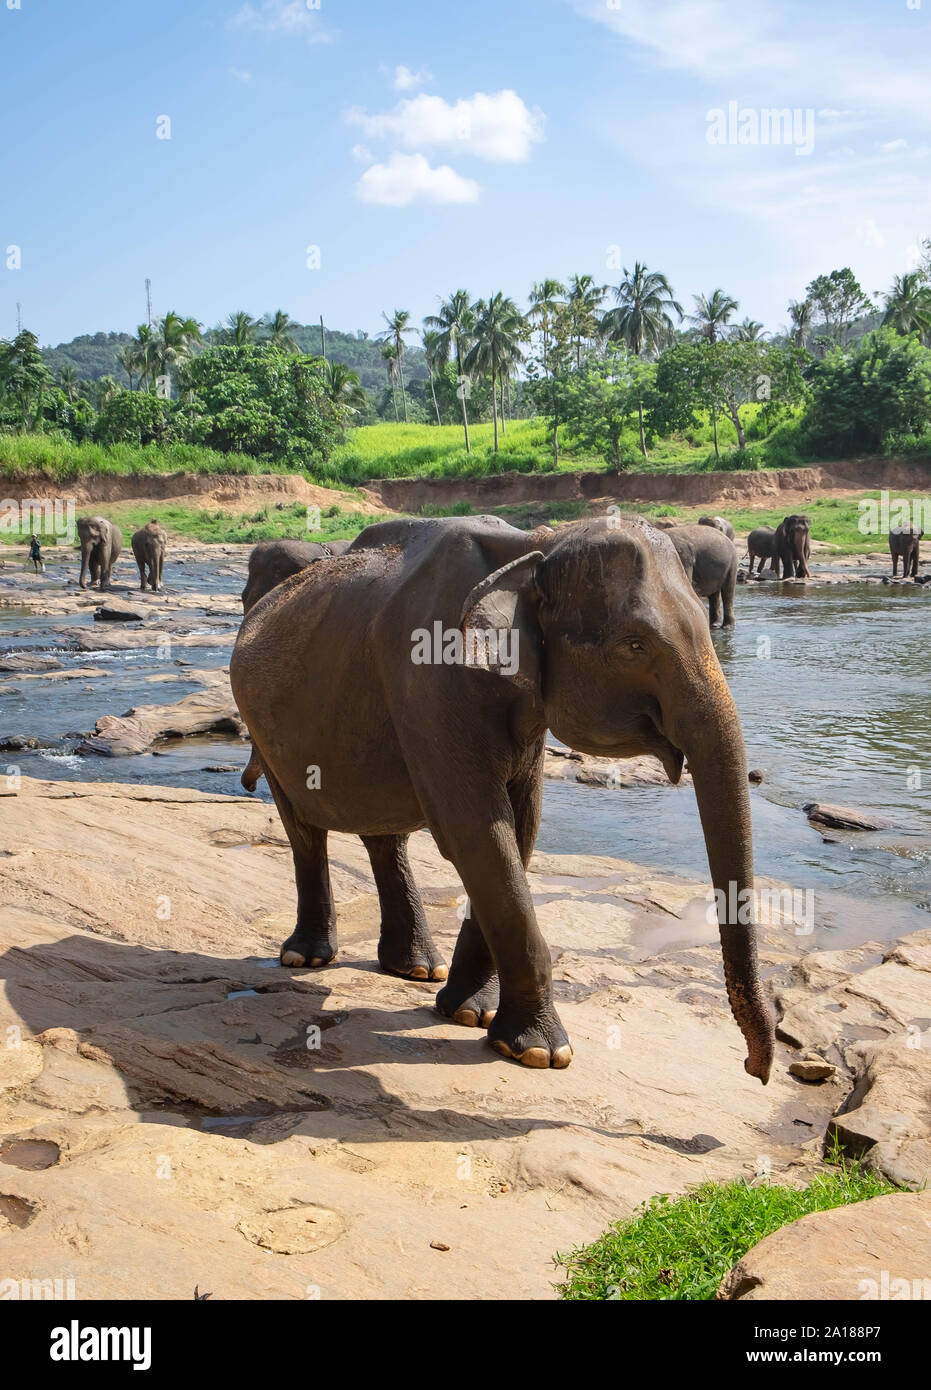 Pinnawala/ Sri Lanka: AUGUST 03- 2019: Asian elephants walking  in a river near the village of Pinnawala. Here is a nursery and captive breeding groun Stock Photo